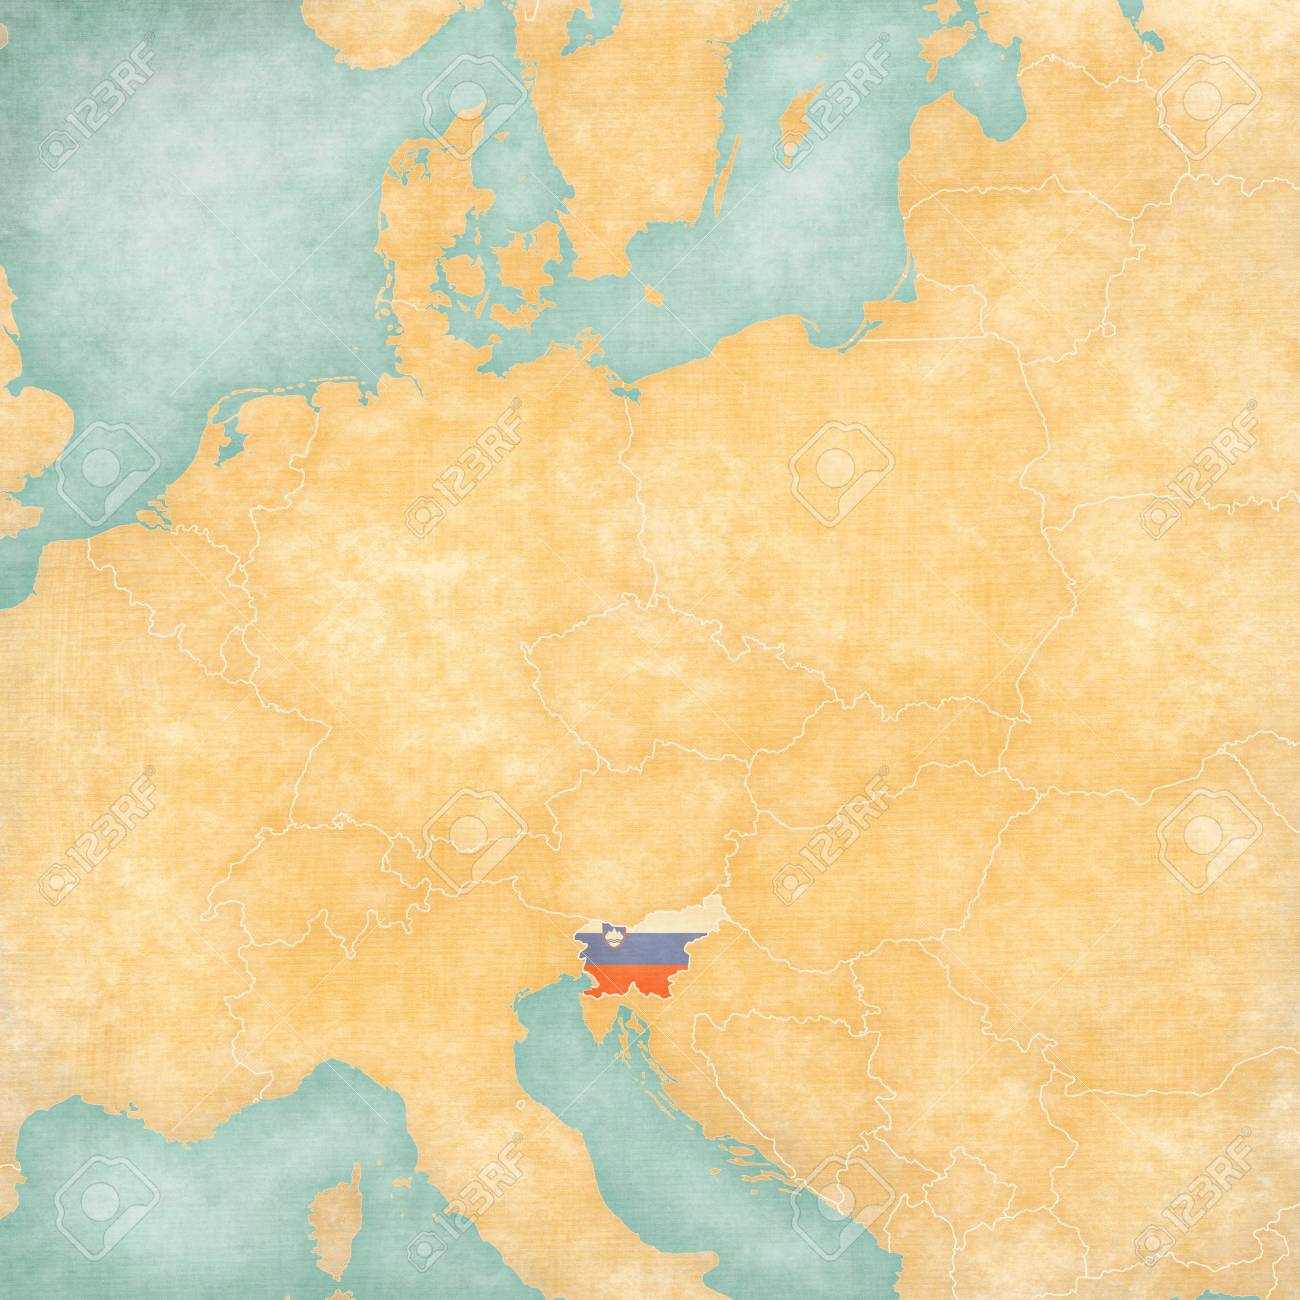 Slovenia (Slovenian Flag) On ??the Map Of Central Europe In Soft ...